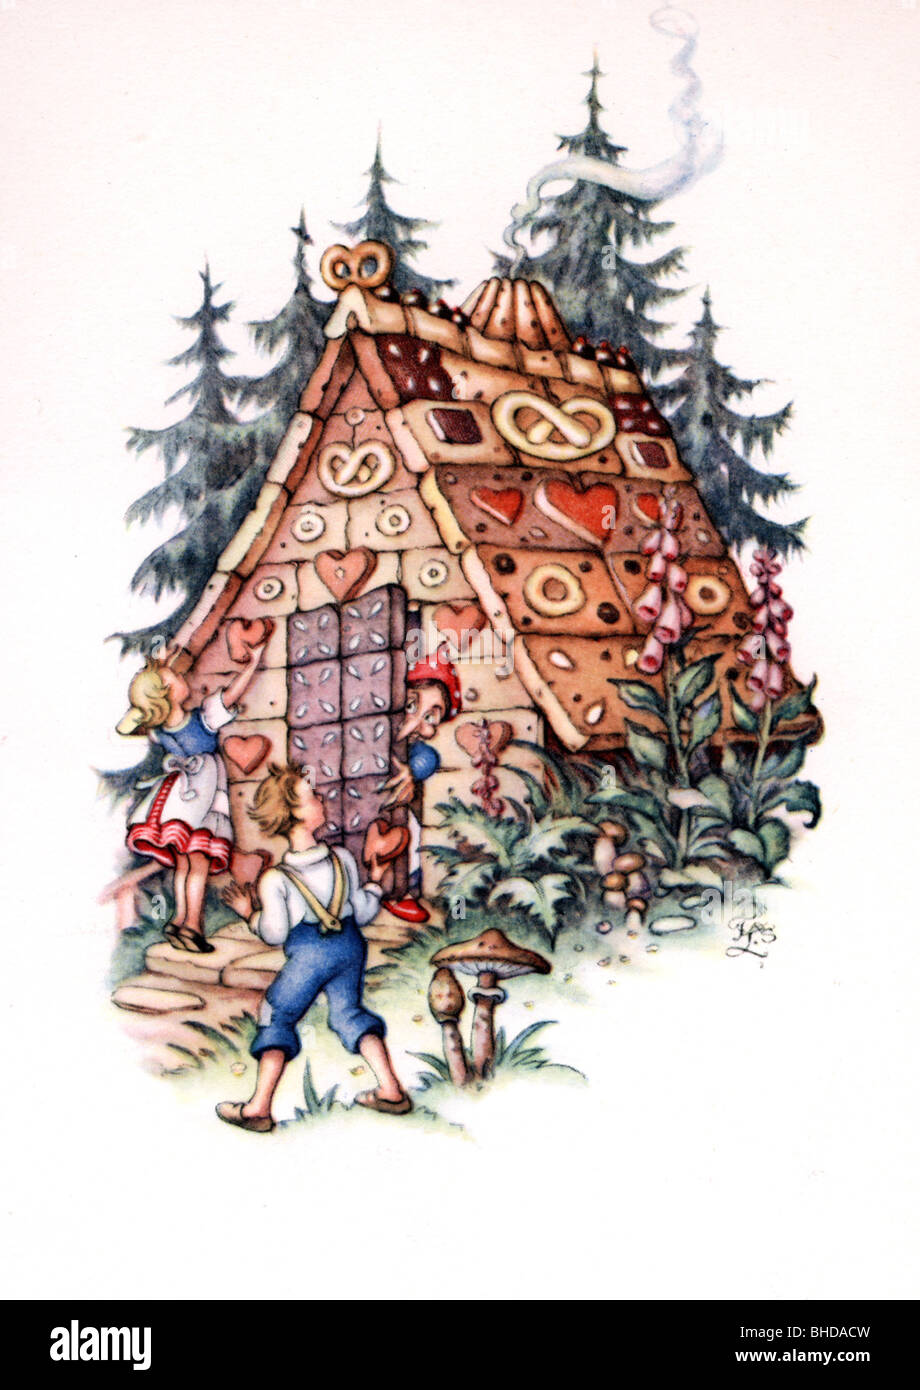 original hansel and gretel fairy tale